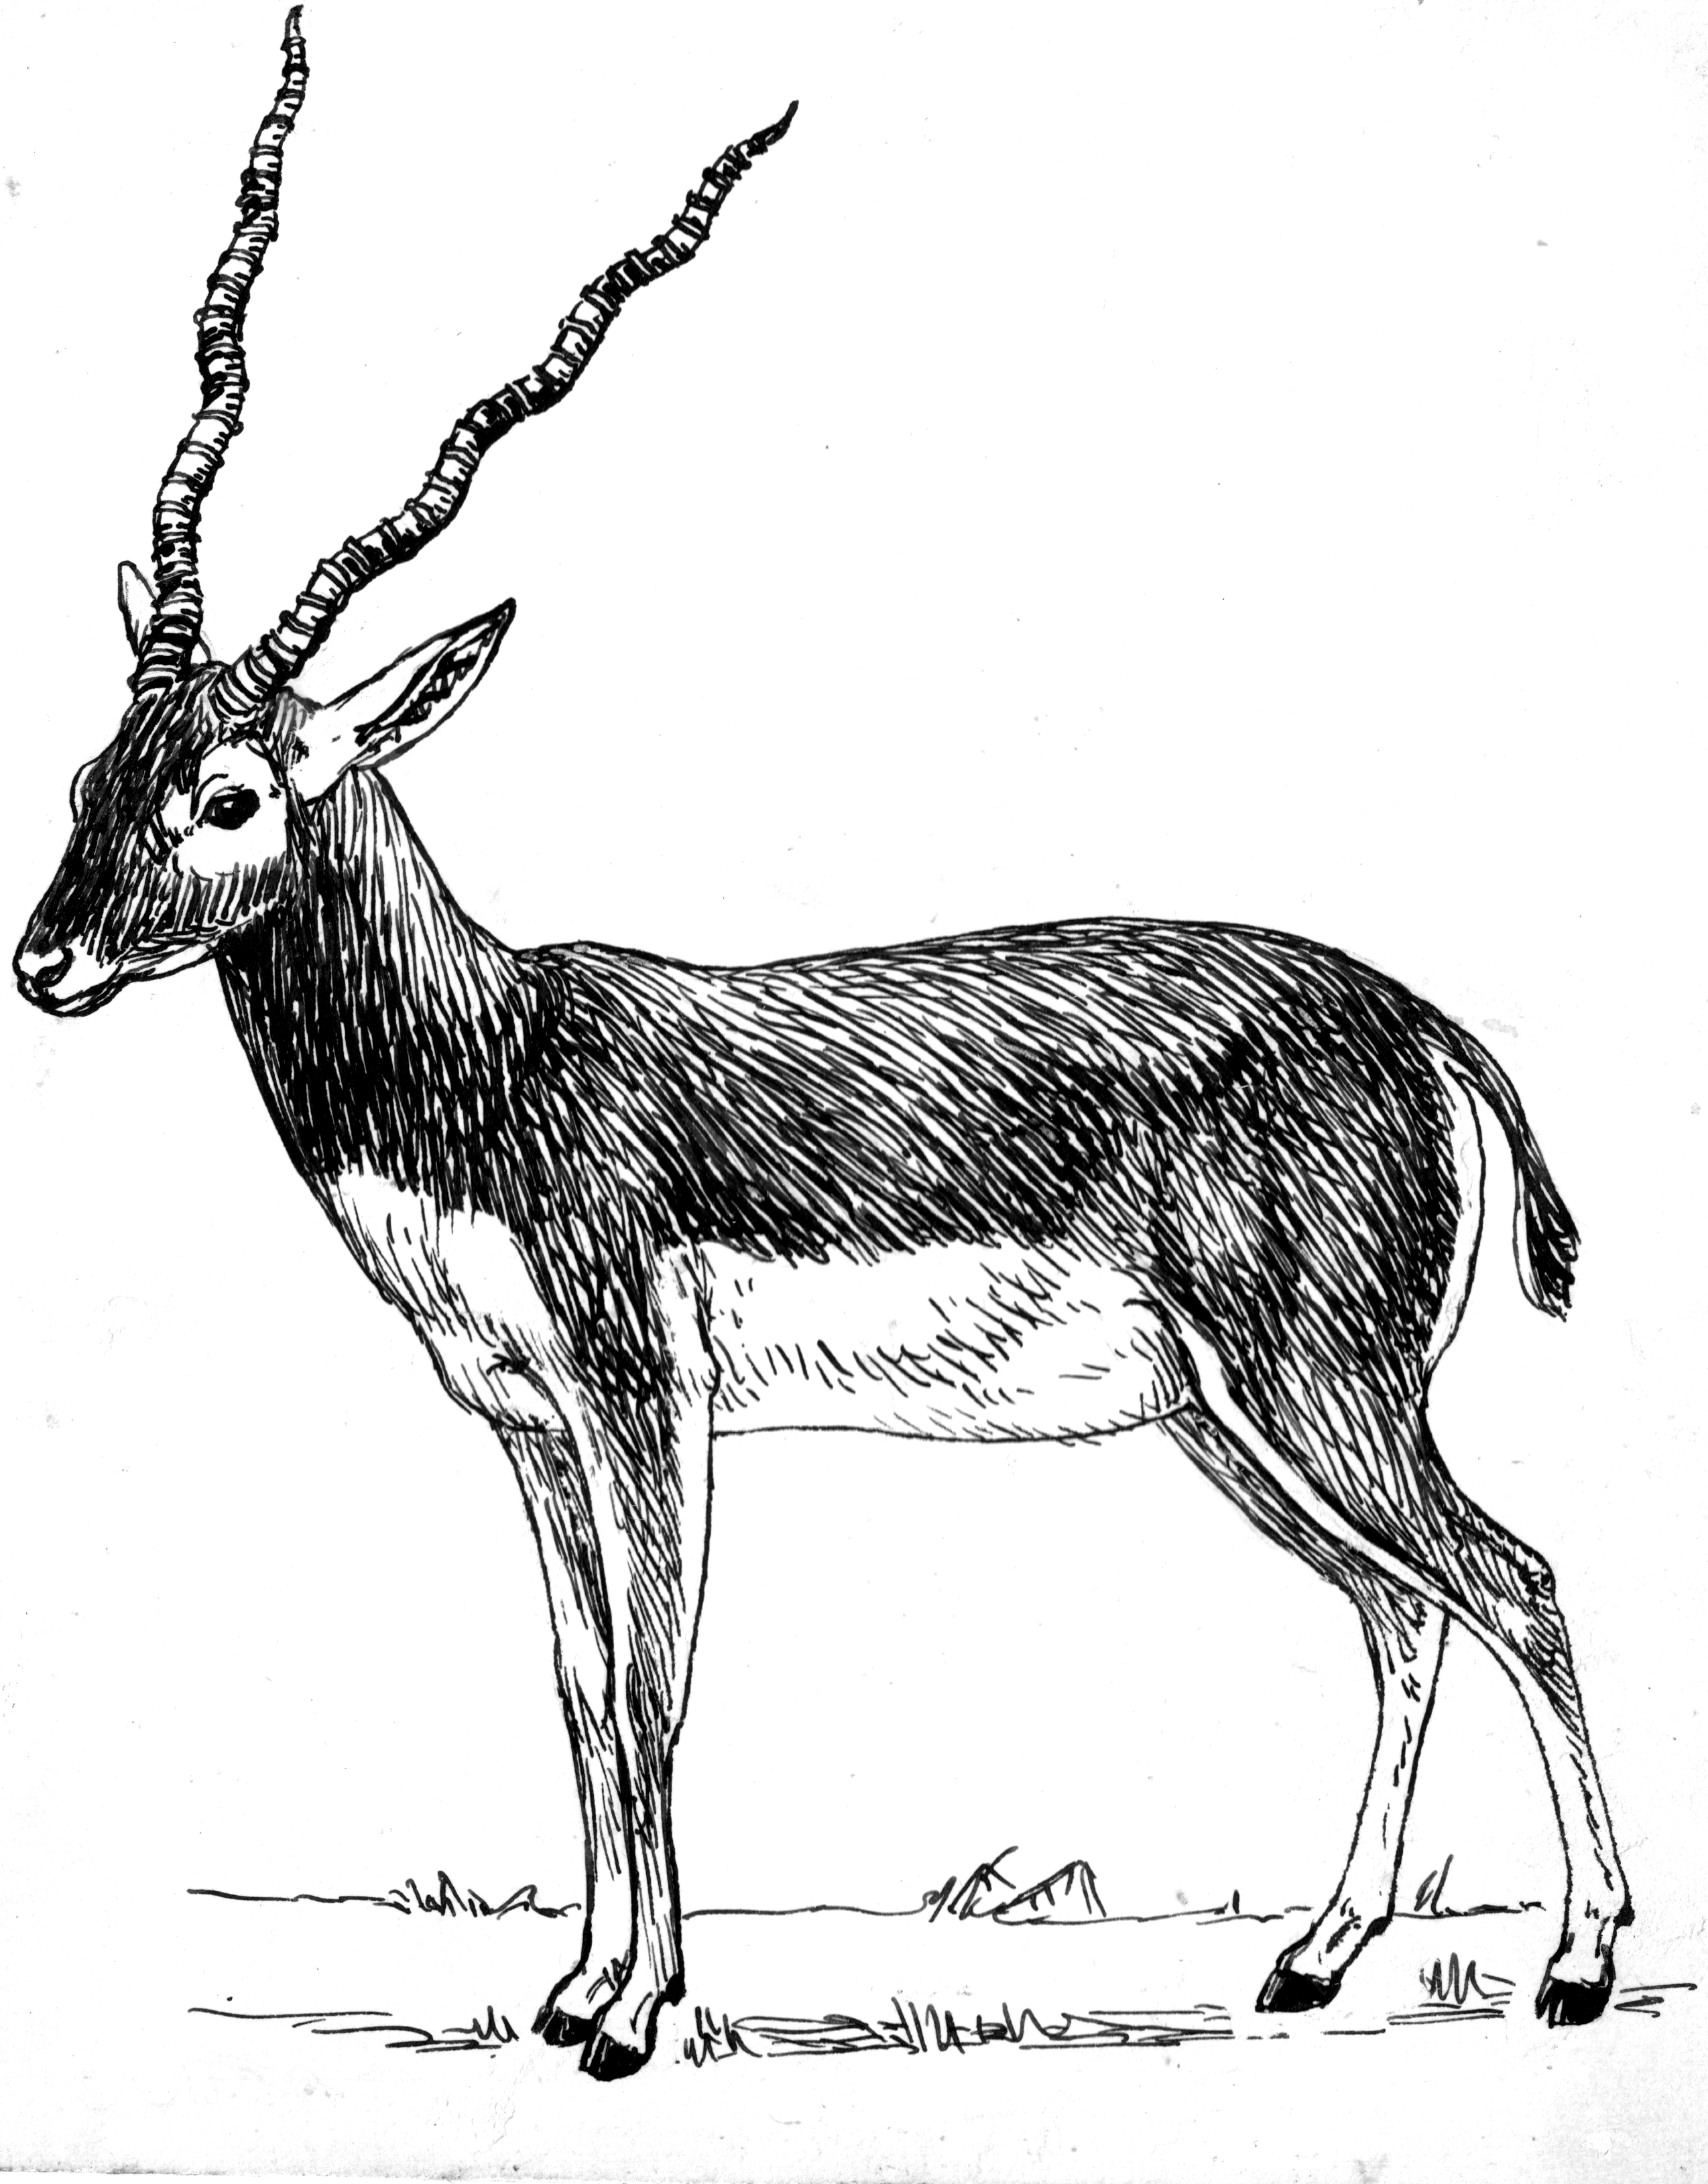 antelope drawing how to draw a pronghorn antelope step by step drawing antelope drawing